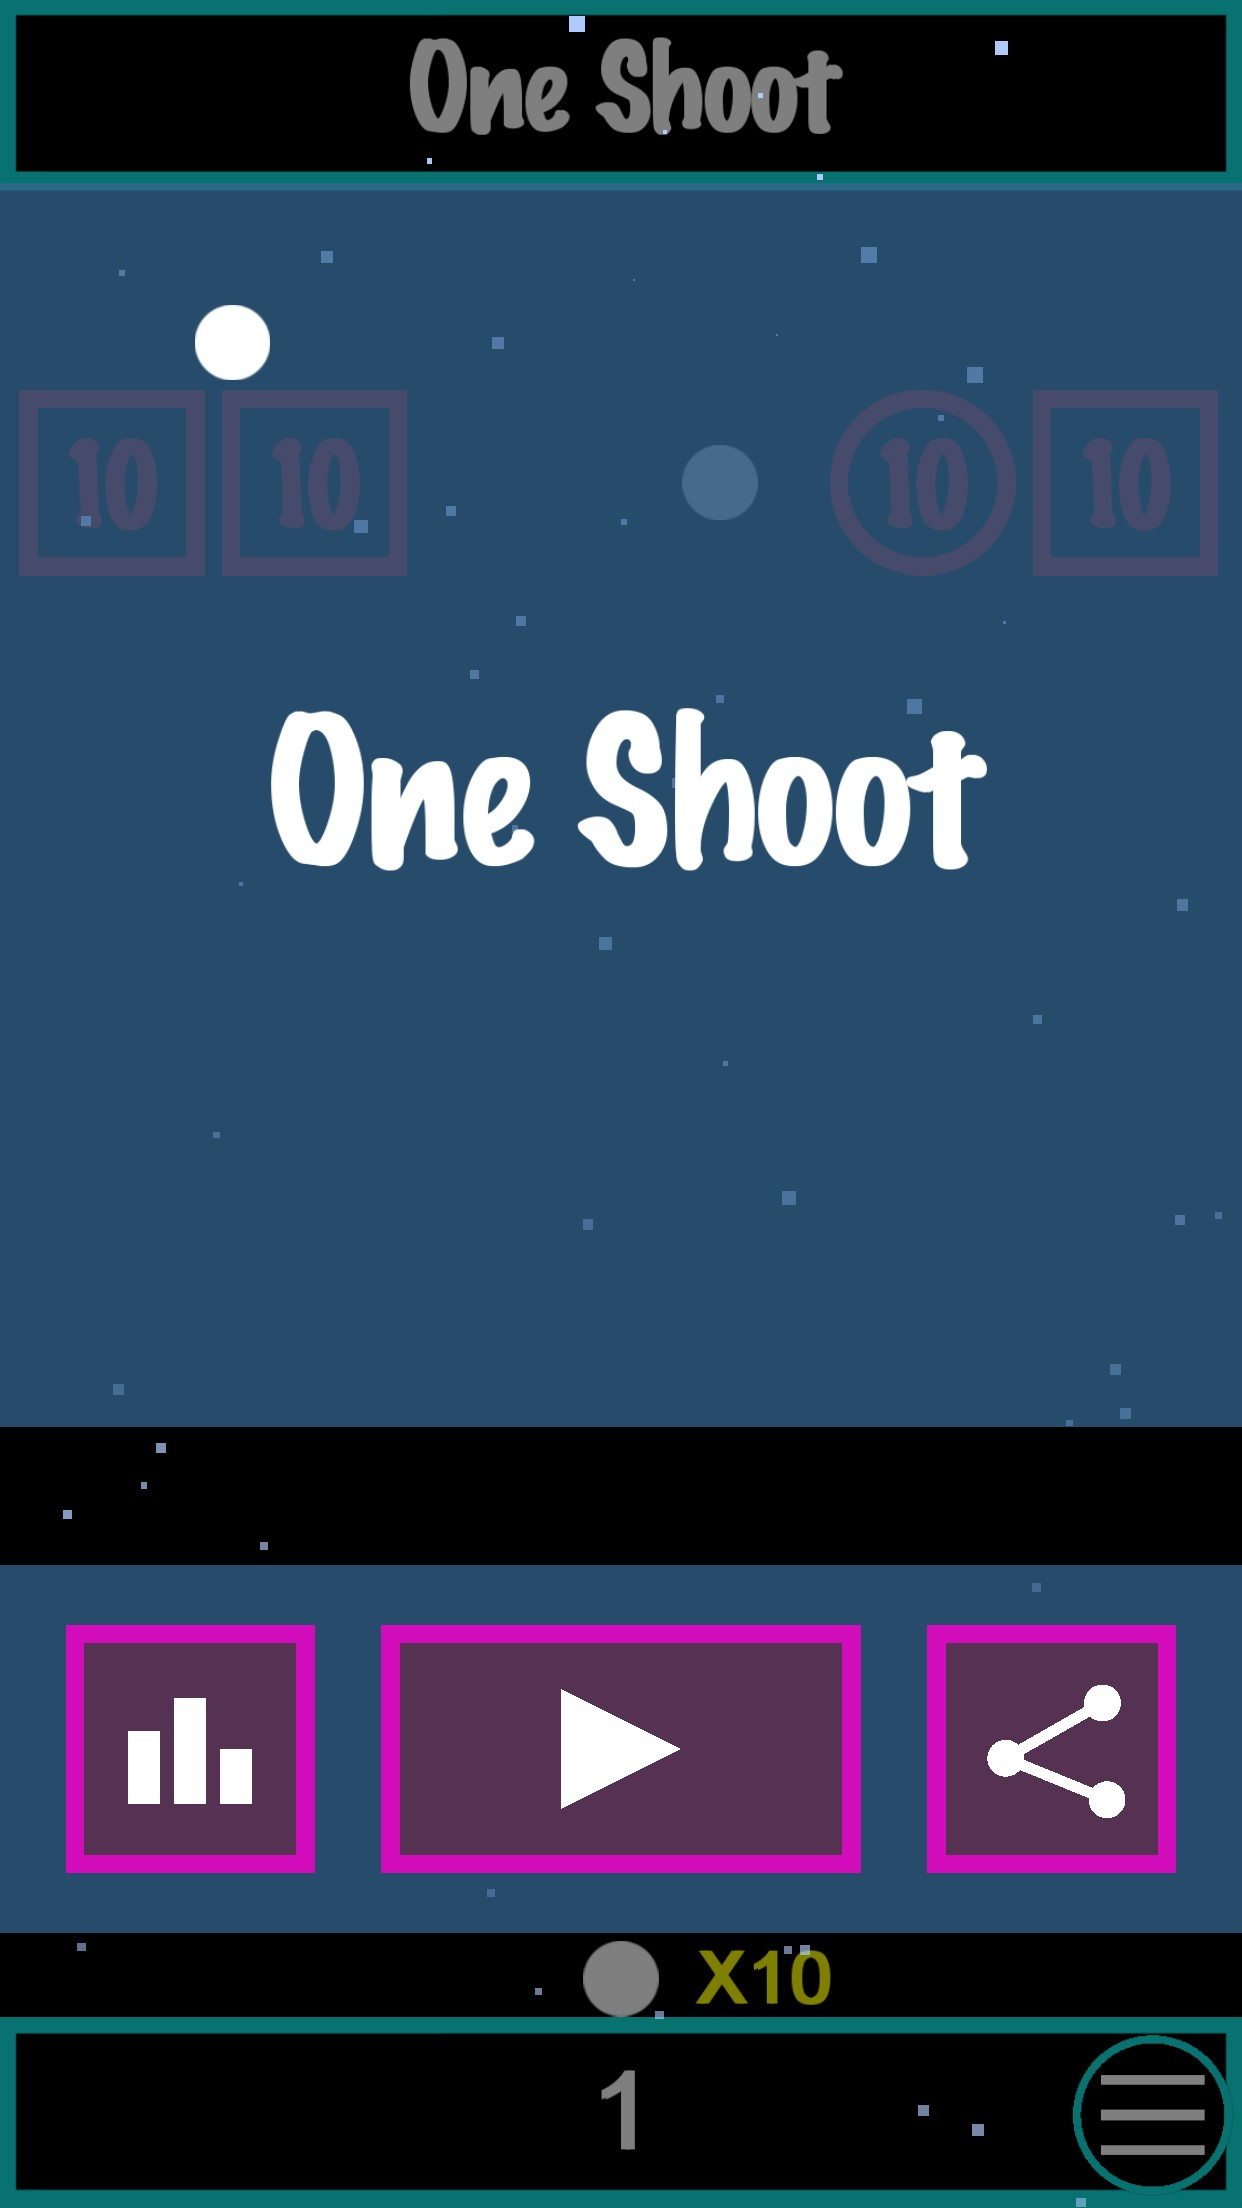 One Shoot